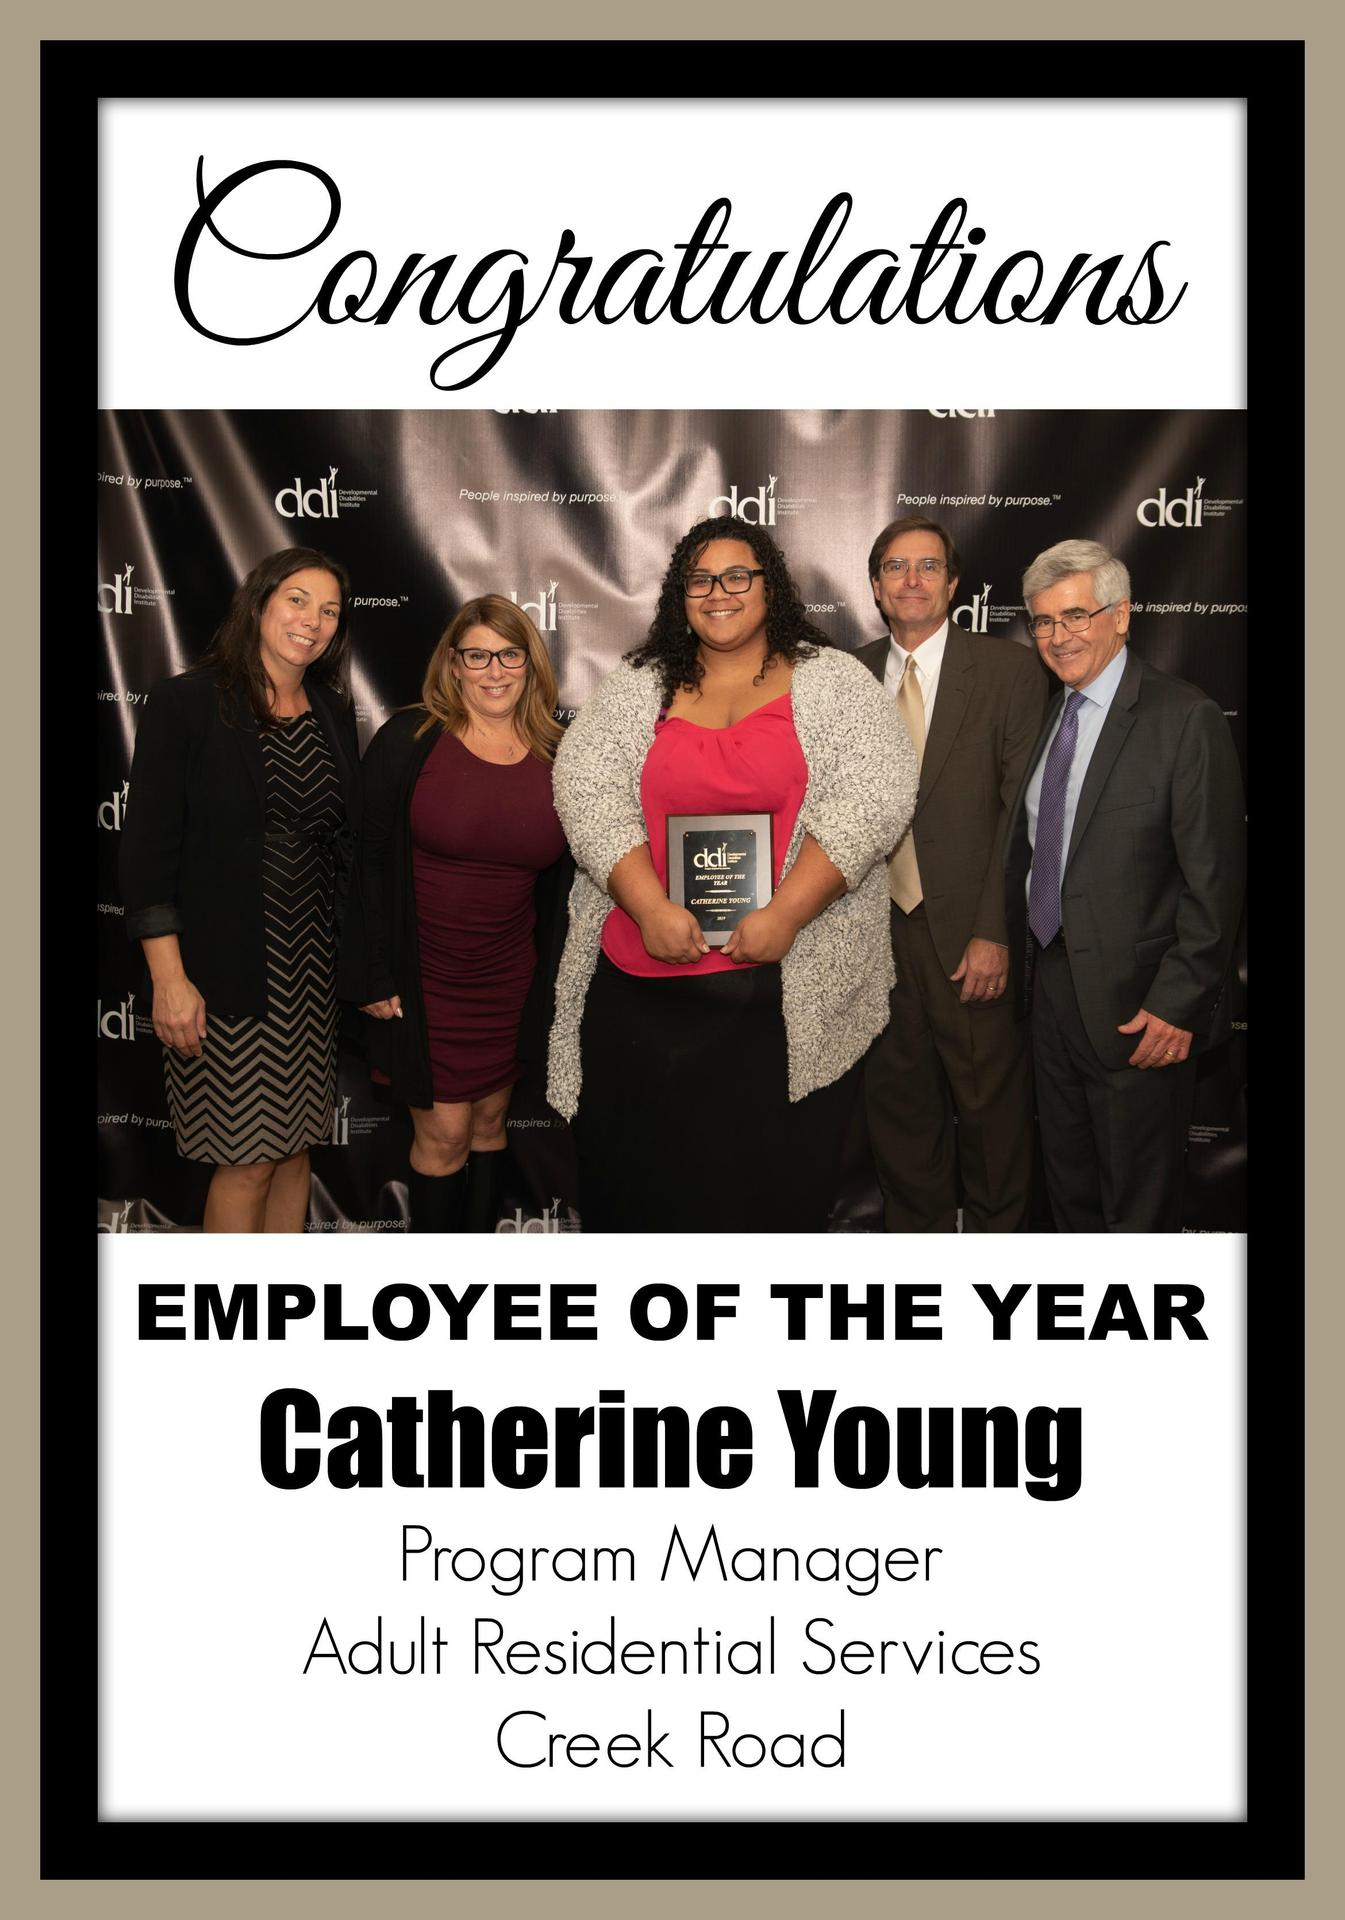 Employee of the Year Catherine Young